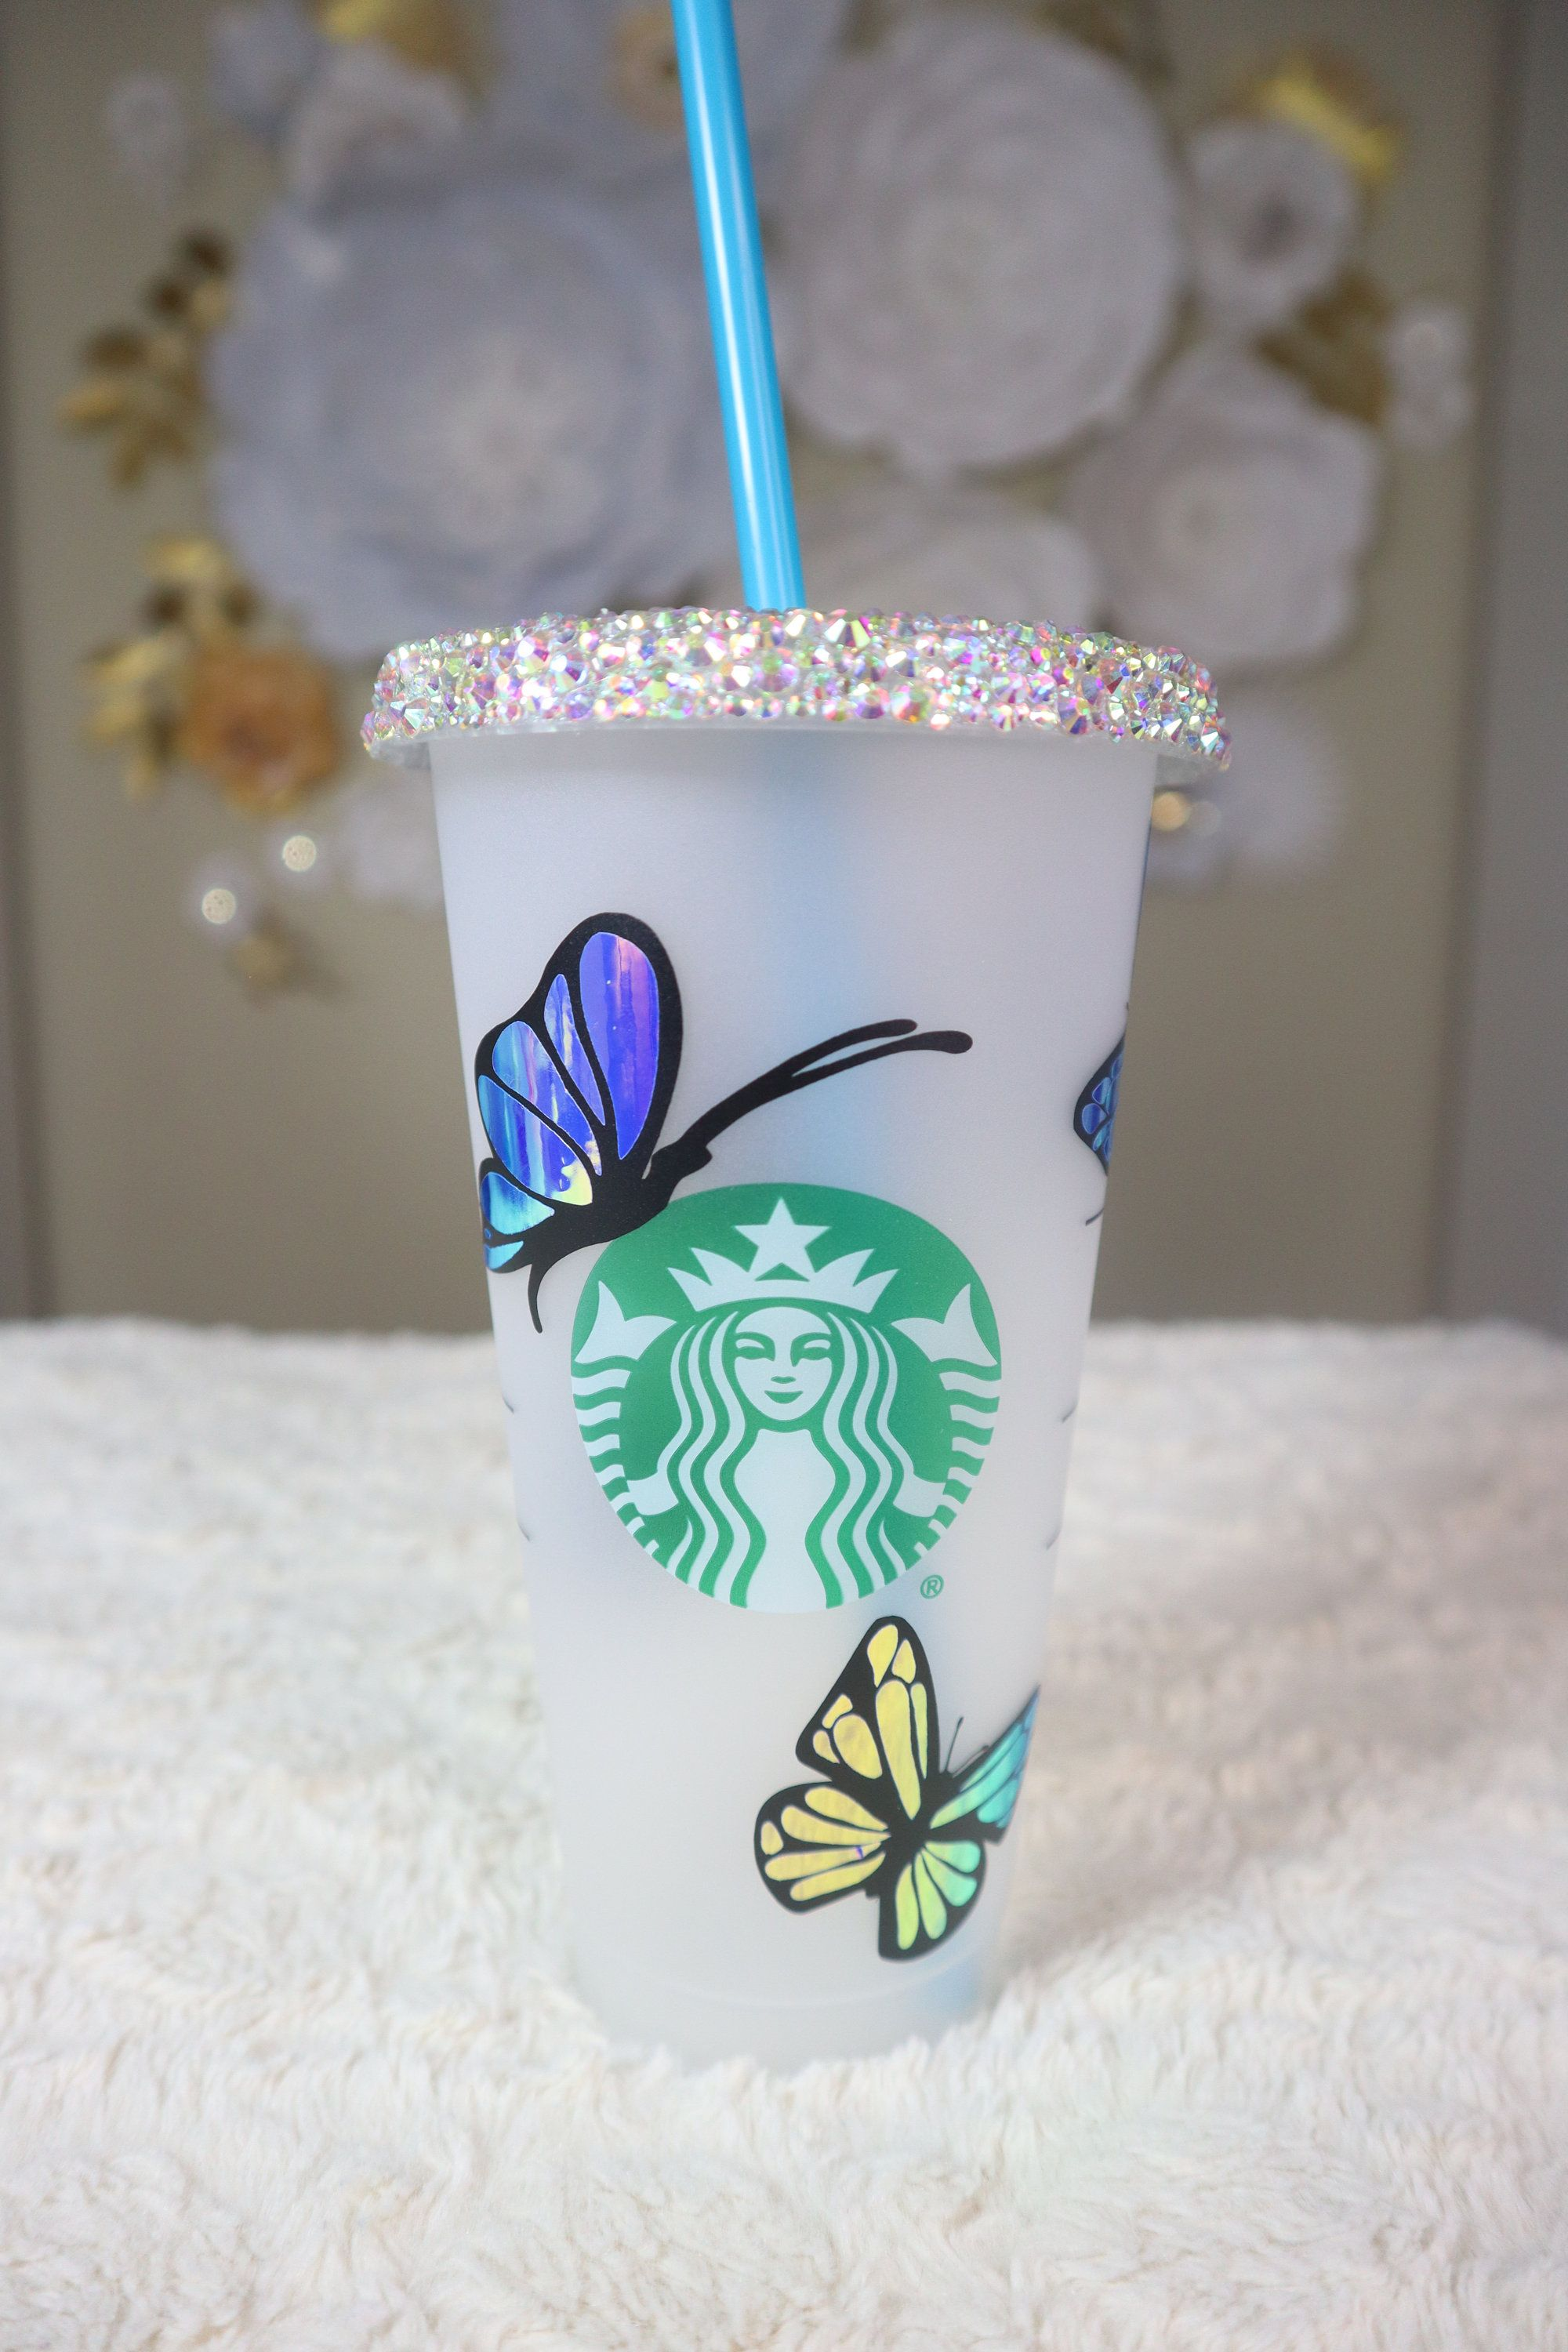 Butterfly Starbucks Tumbler,Custom Starbucks Cup,Personalized Butterfly Cup,Gift for Butterfly Lover Starbucks Cup Butterfly Starbucks Cup